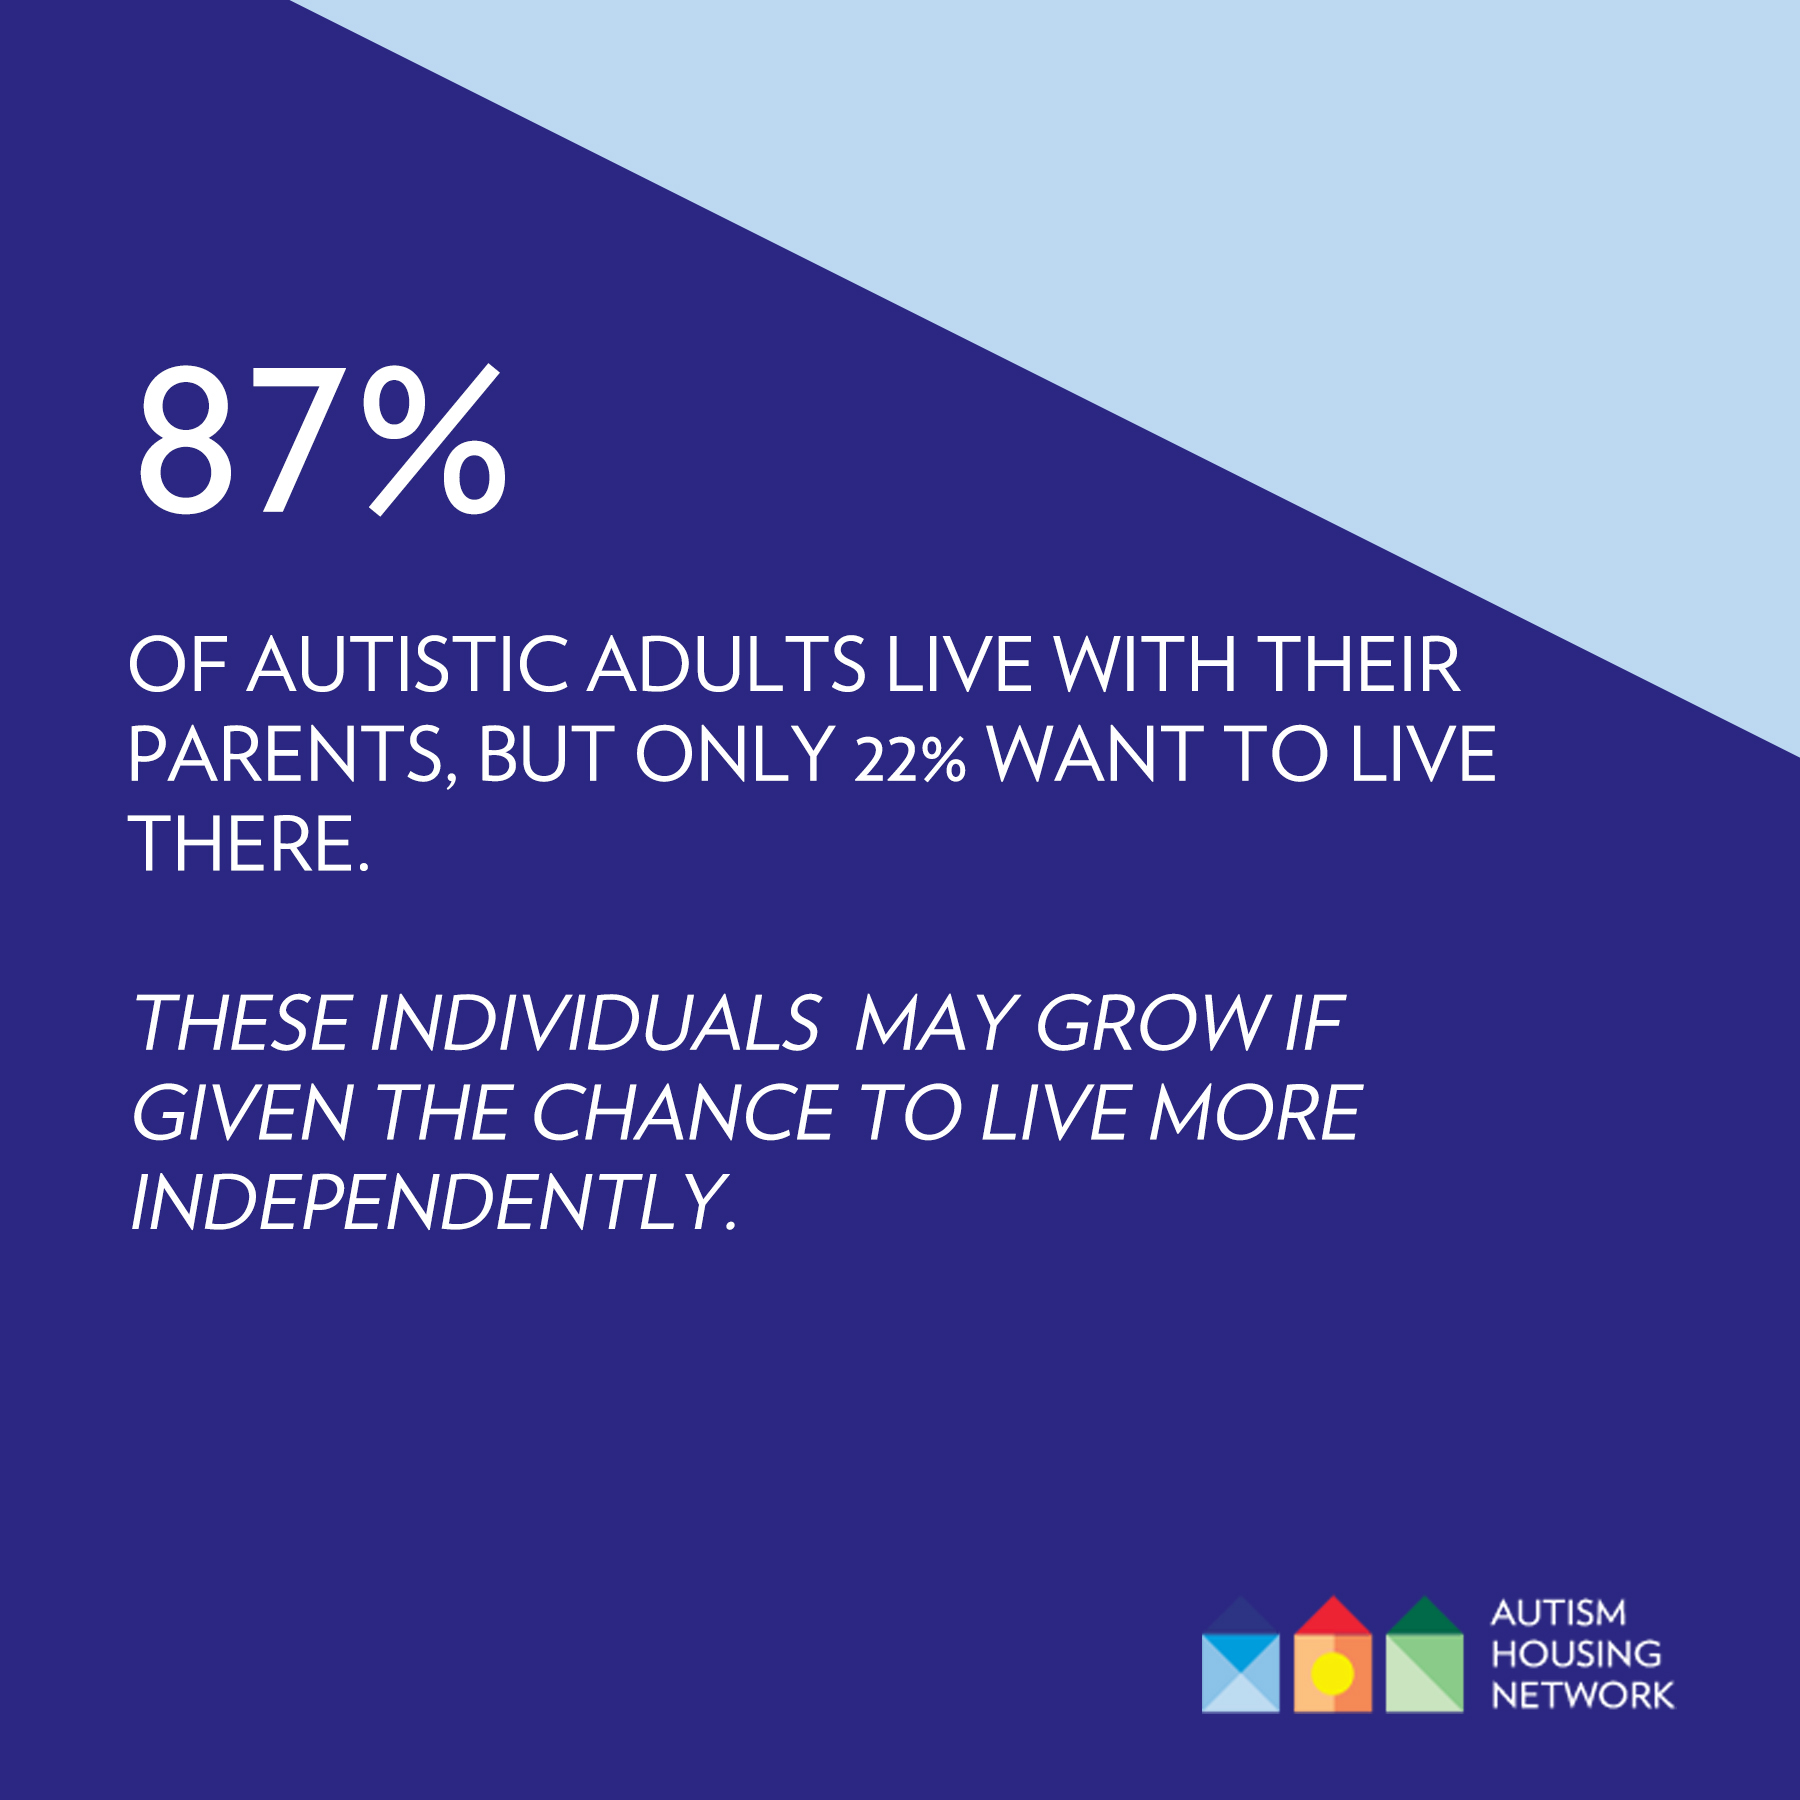 Autism Housing Report Announced Same Day as CDC Announces 2.2% of Adults Are Autistic